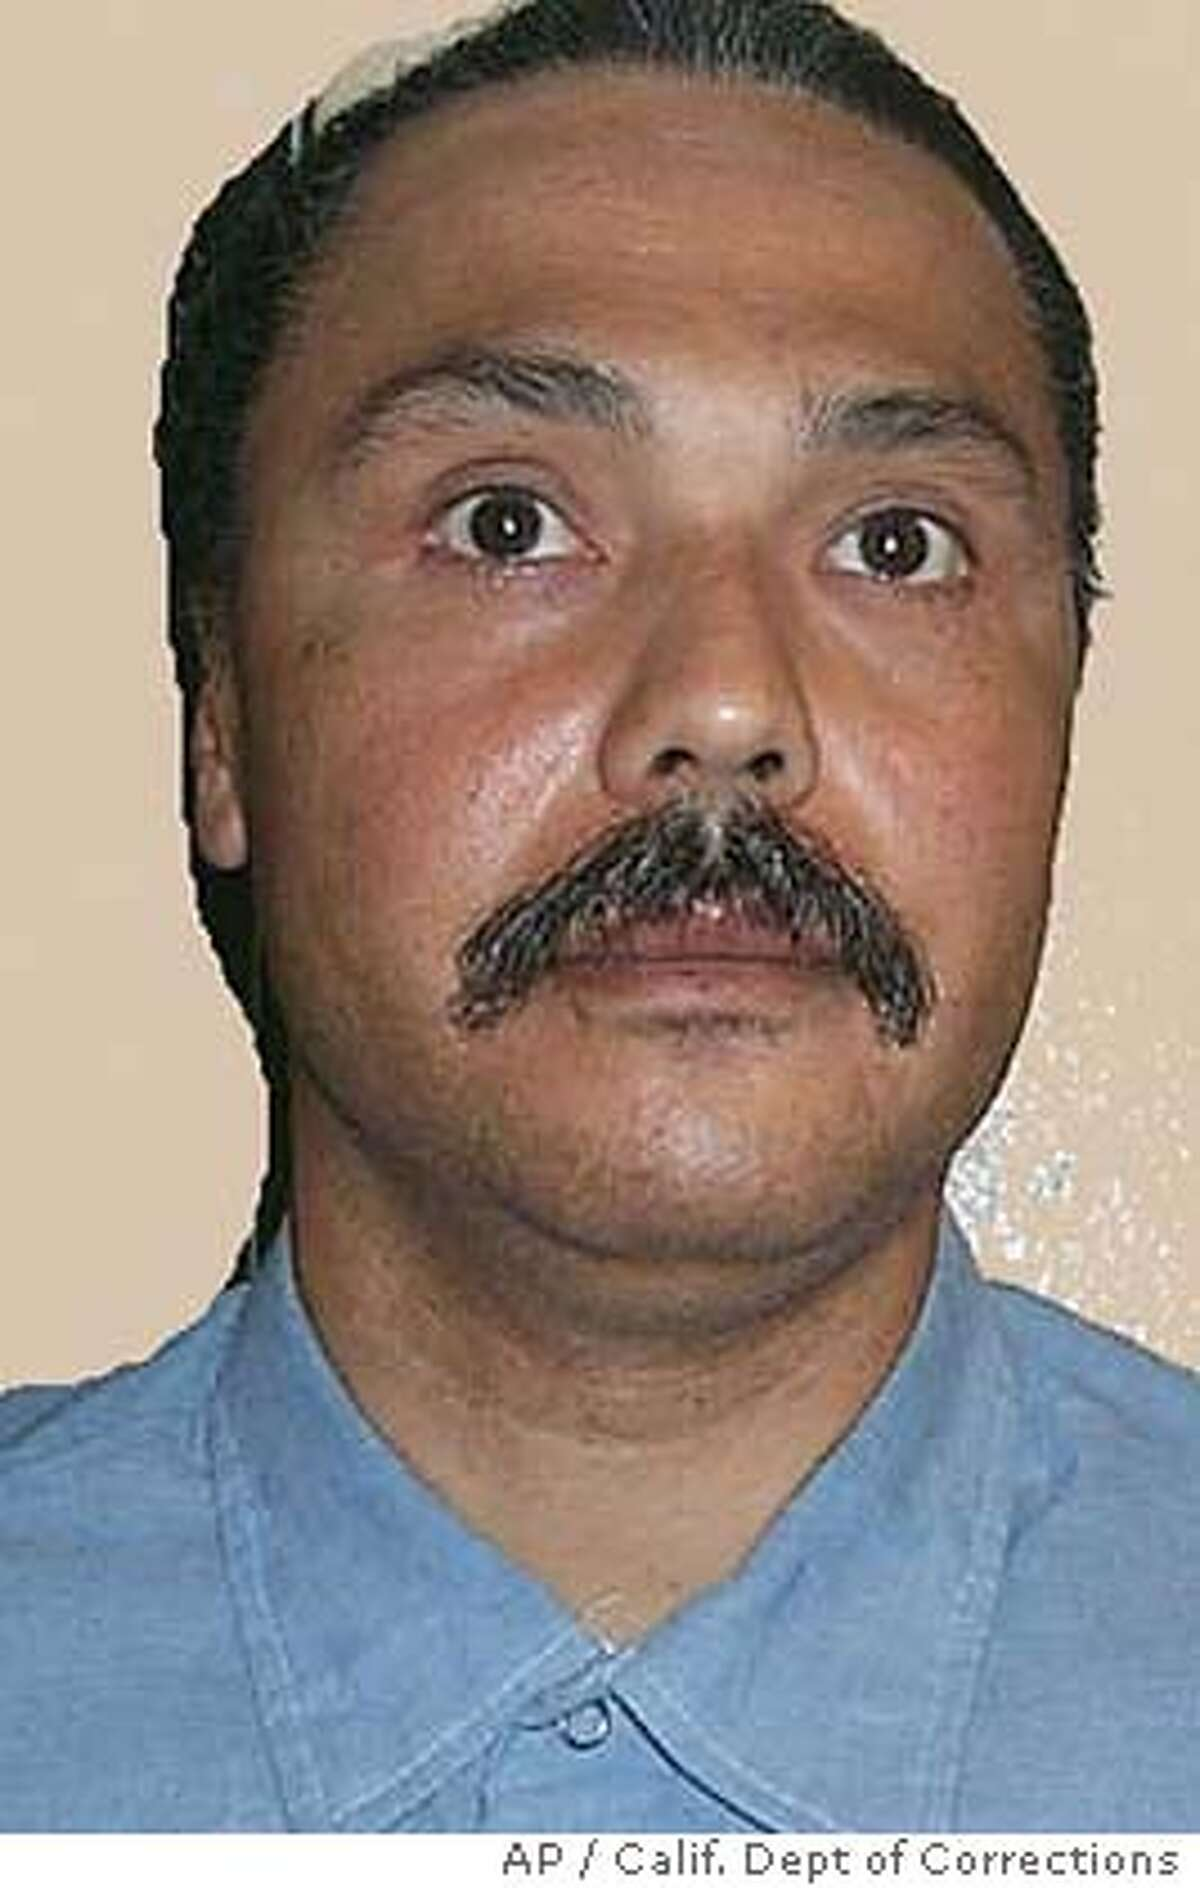 ** FILE -- PHOTO HAS BEEN DIGITALLY ALTERED BY SOURCE TO REMOVE BACKGROUND **In this undated photo released by the California Department of Corrections, Michael Morales, 46, of Stockton, is seen. Morales was convicted in 1983 of murdering 17-year-old Terri Winchell, who was found beaten and stabbed in a secluded vineyard. The planned execution of Morales was delayed until Tuesday night, Feb. 21, 2006, after two anesthesiologists refused to participate because of ethical concerns. (AP Photo/ California Department of Corrections, HO)Ran on: 02-22-2006 Ran on: 02-22-2006 Ran on: 02-26-2006 ** PHOTO HAS BEEN DIGITALLY ALTERED BY SOURCE TO REMOVE BACKGROUND **